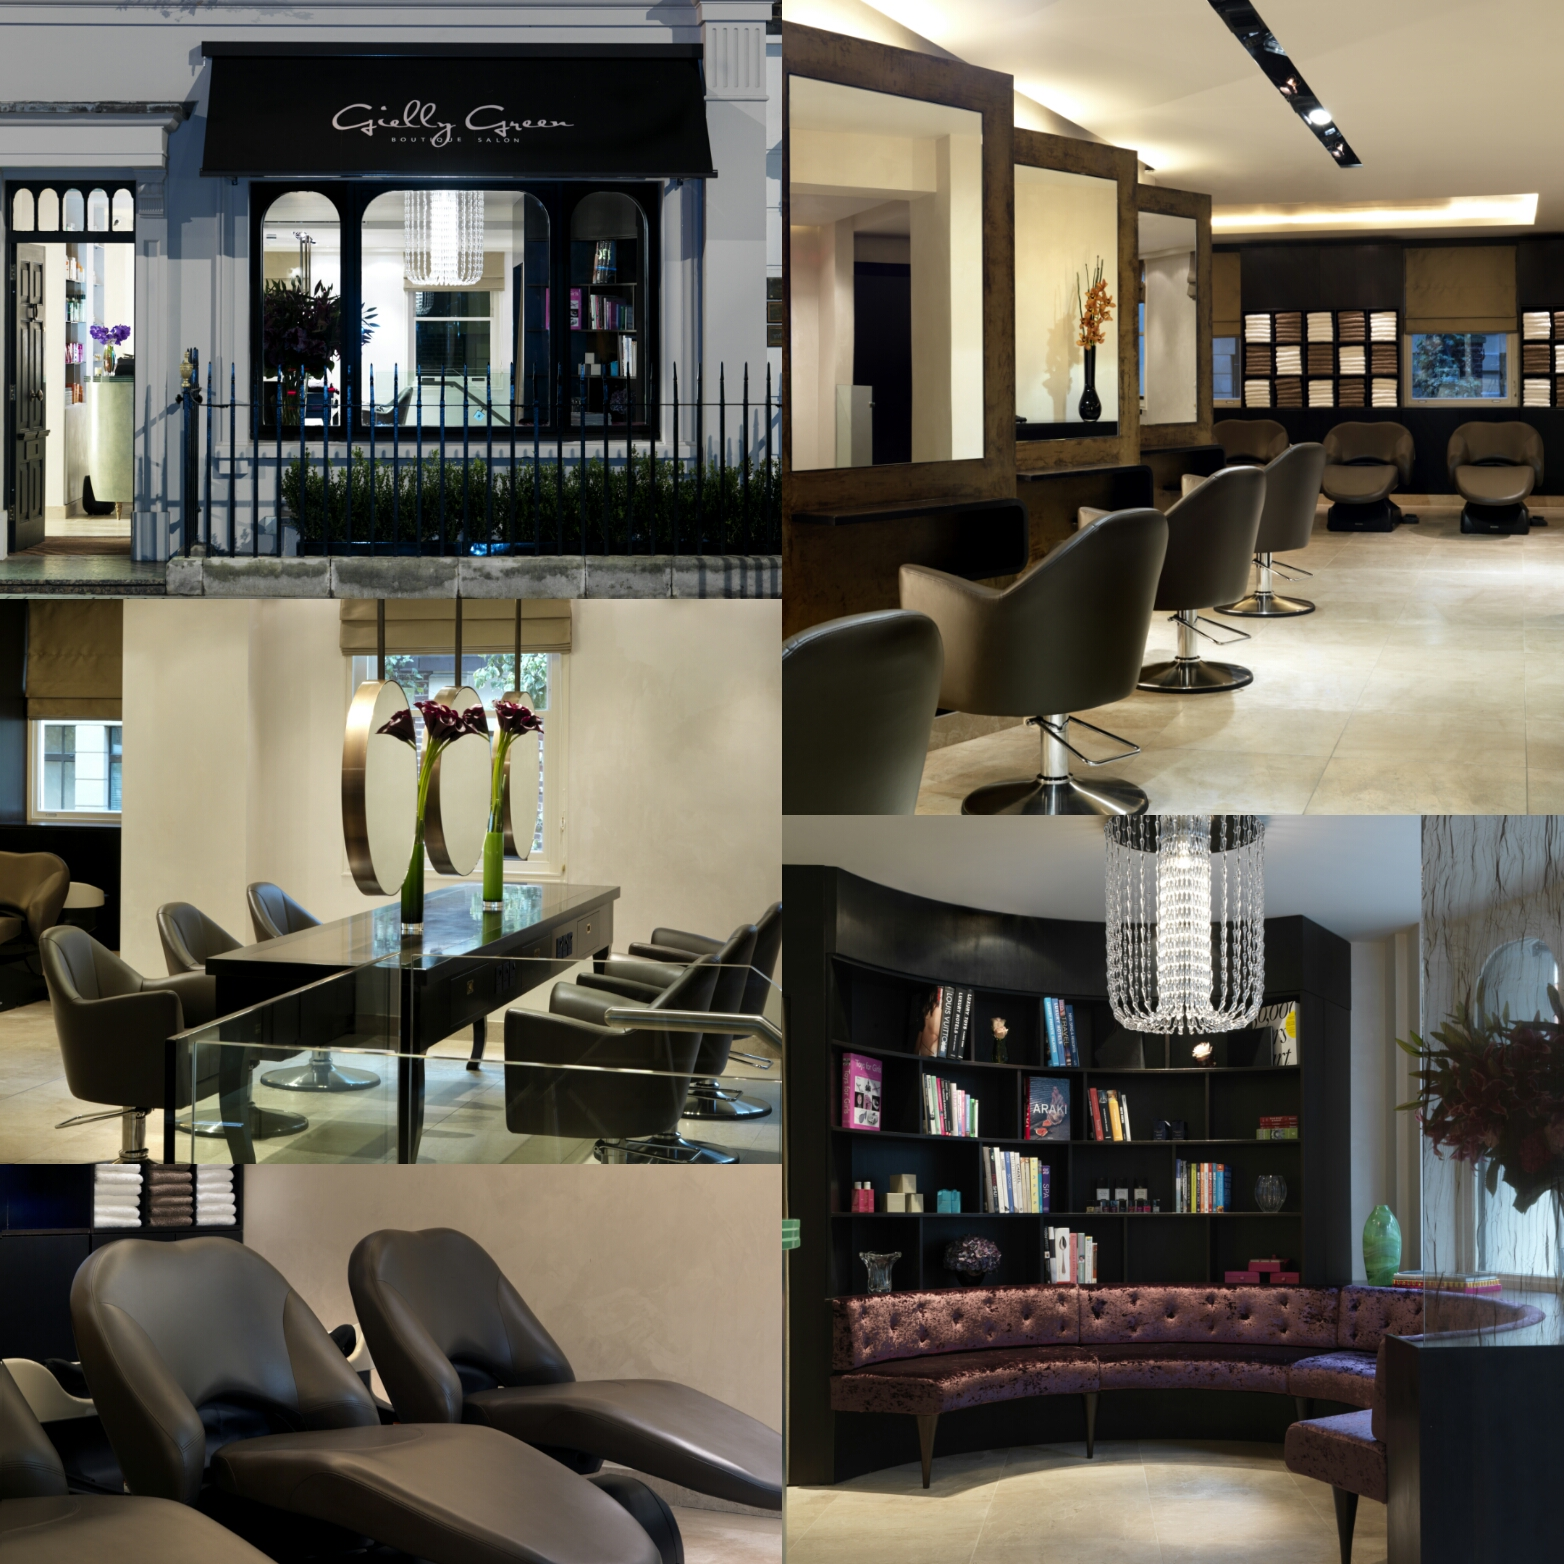 LONDON - @ GIELLY GREEN SALON BOUTIQUEAdress: 42-44 George St, Marylebone, London W1U 7ESTo book an appointment call: +44 20 7034 3060